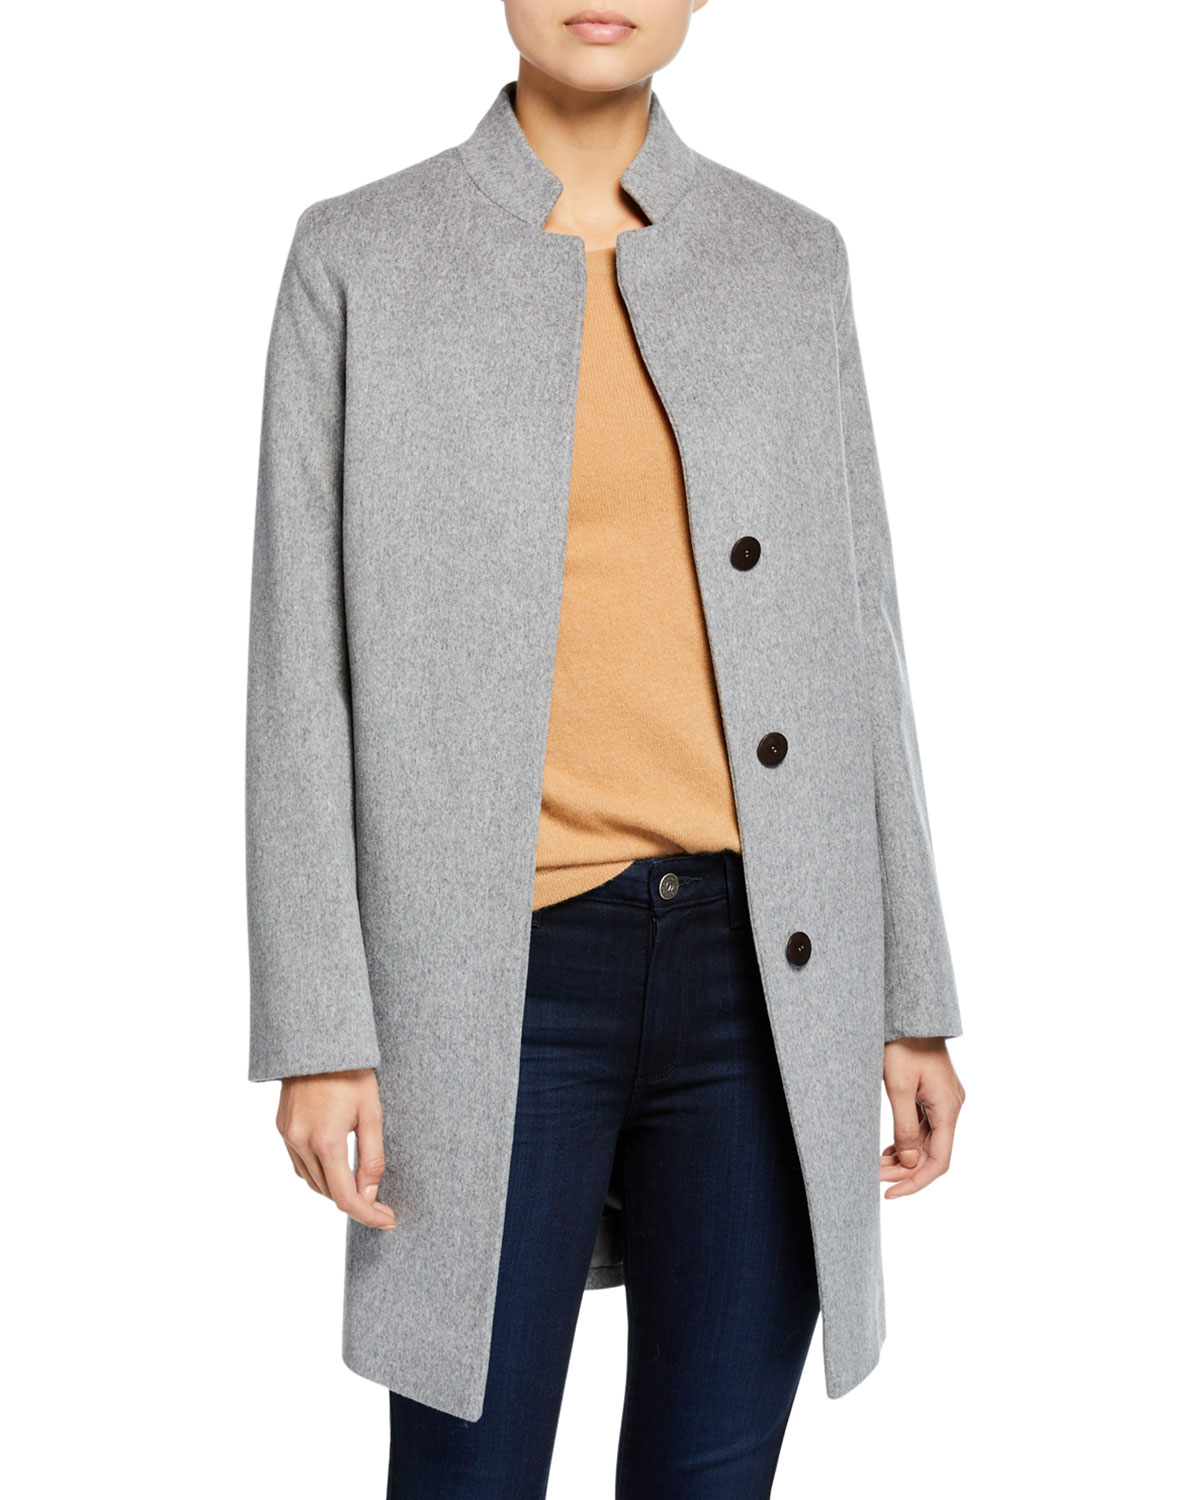 FLEURETTE Inverted-Collar Wool Coat in Gray